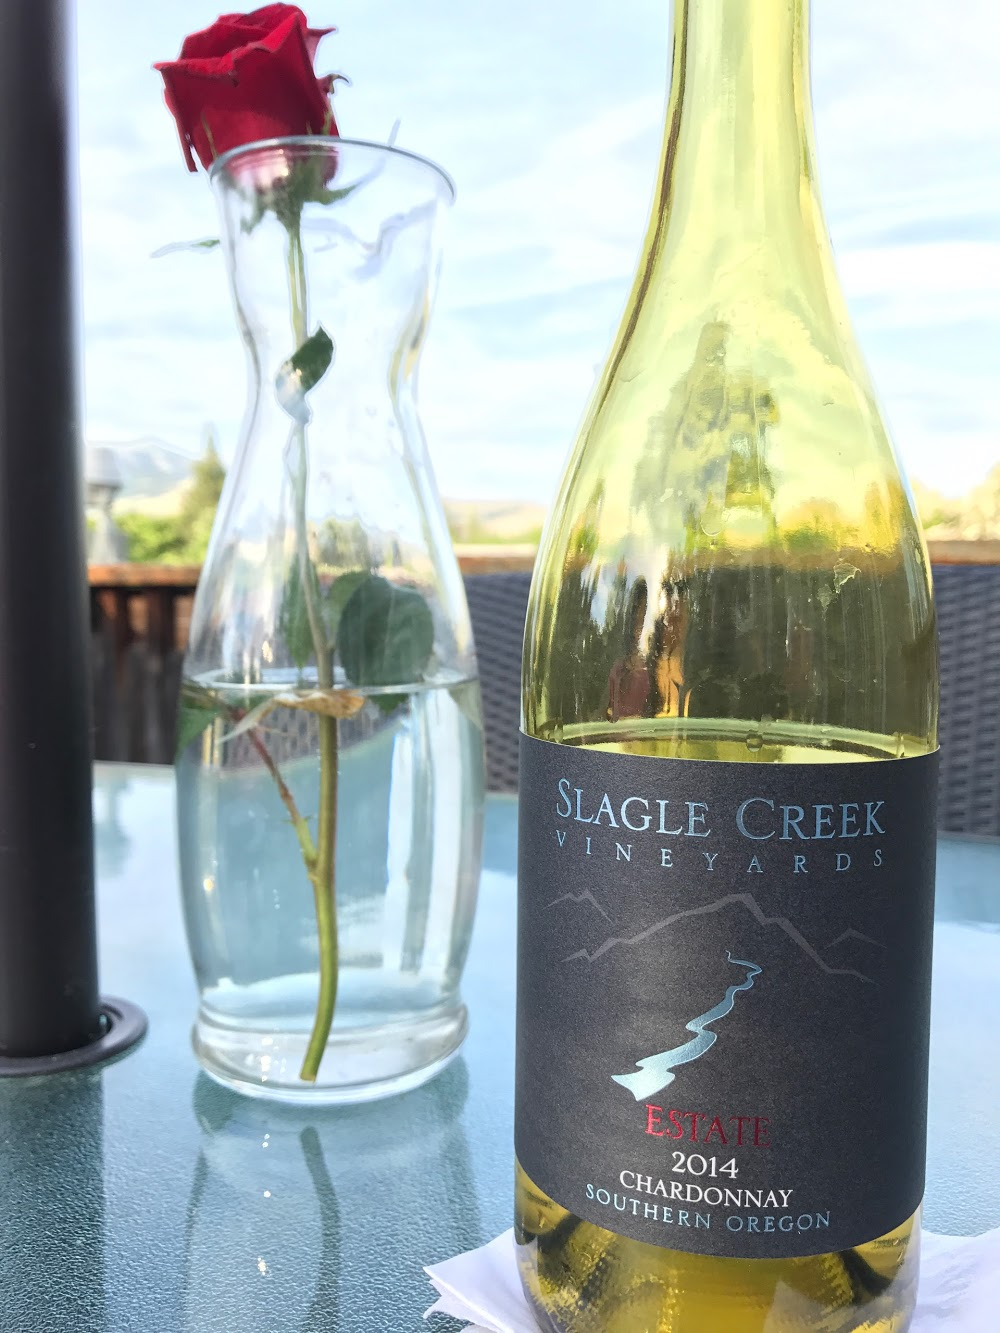 Slagle Creek Vineyards